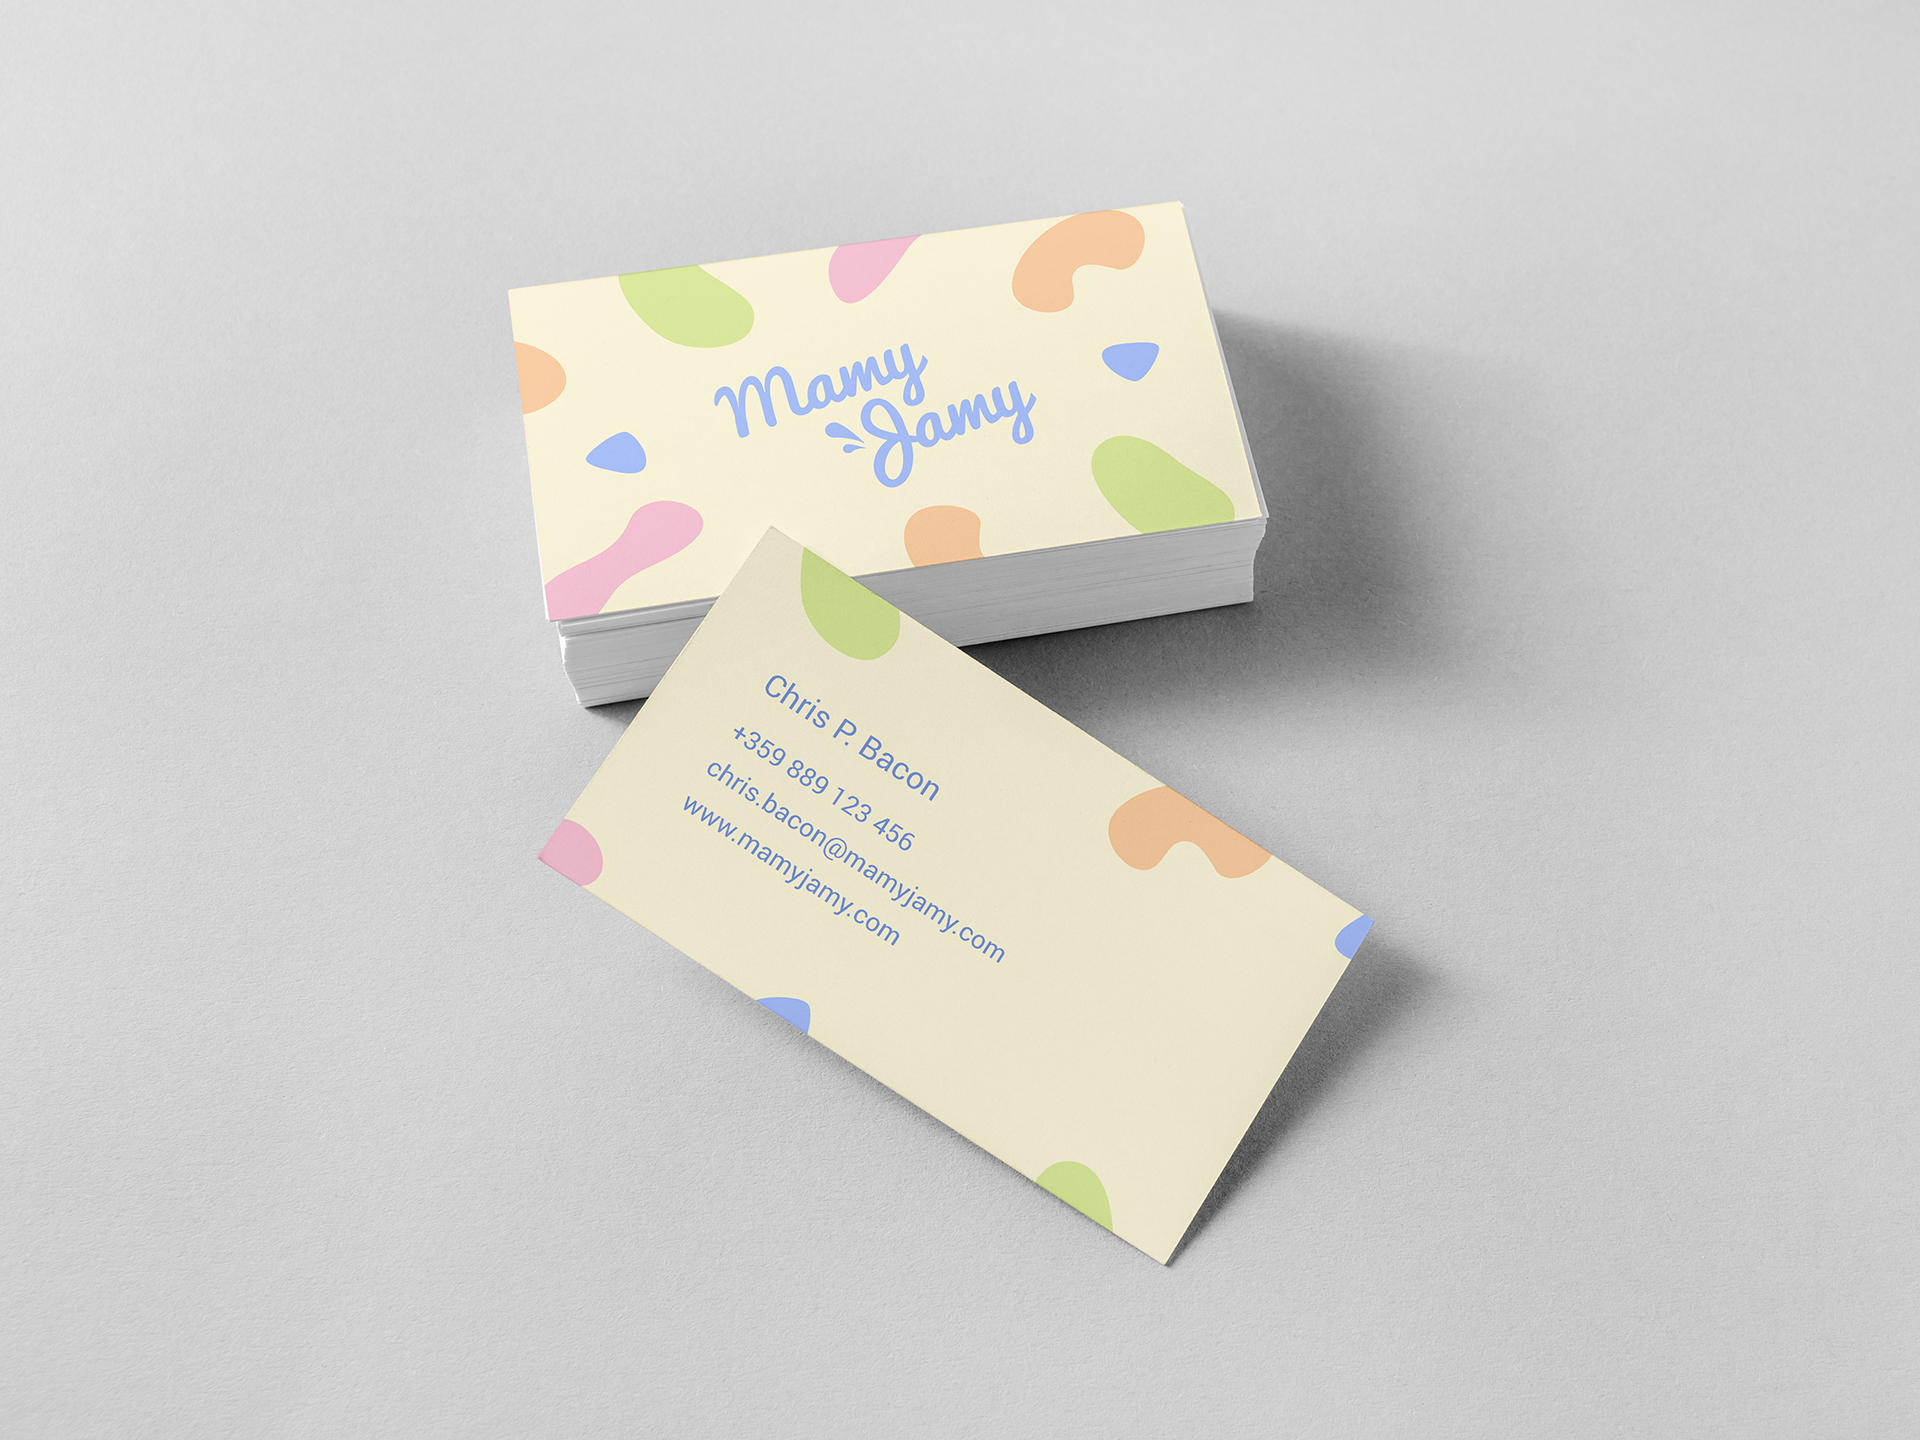 Free Brand Business Cards Mockup PSD For Presentation.jpg